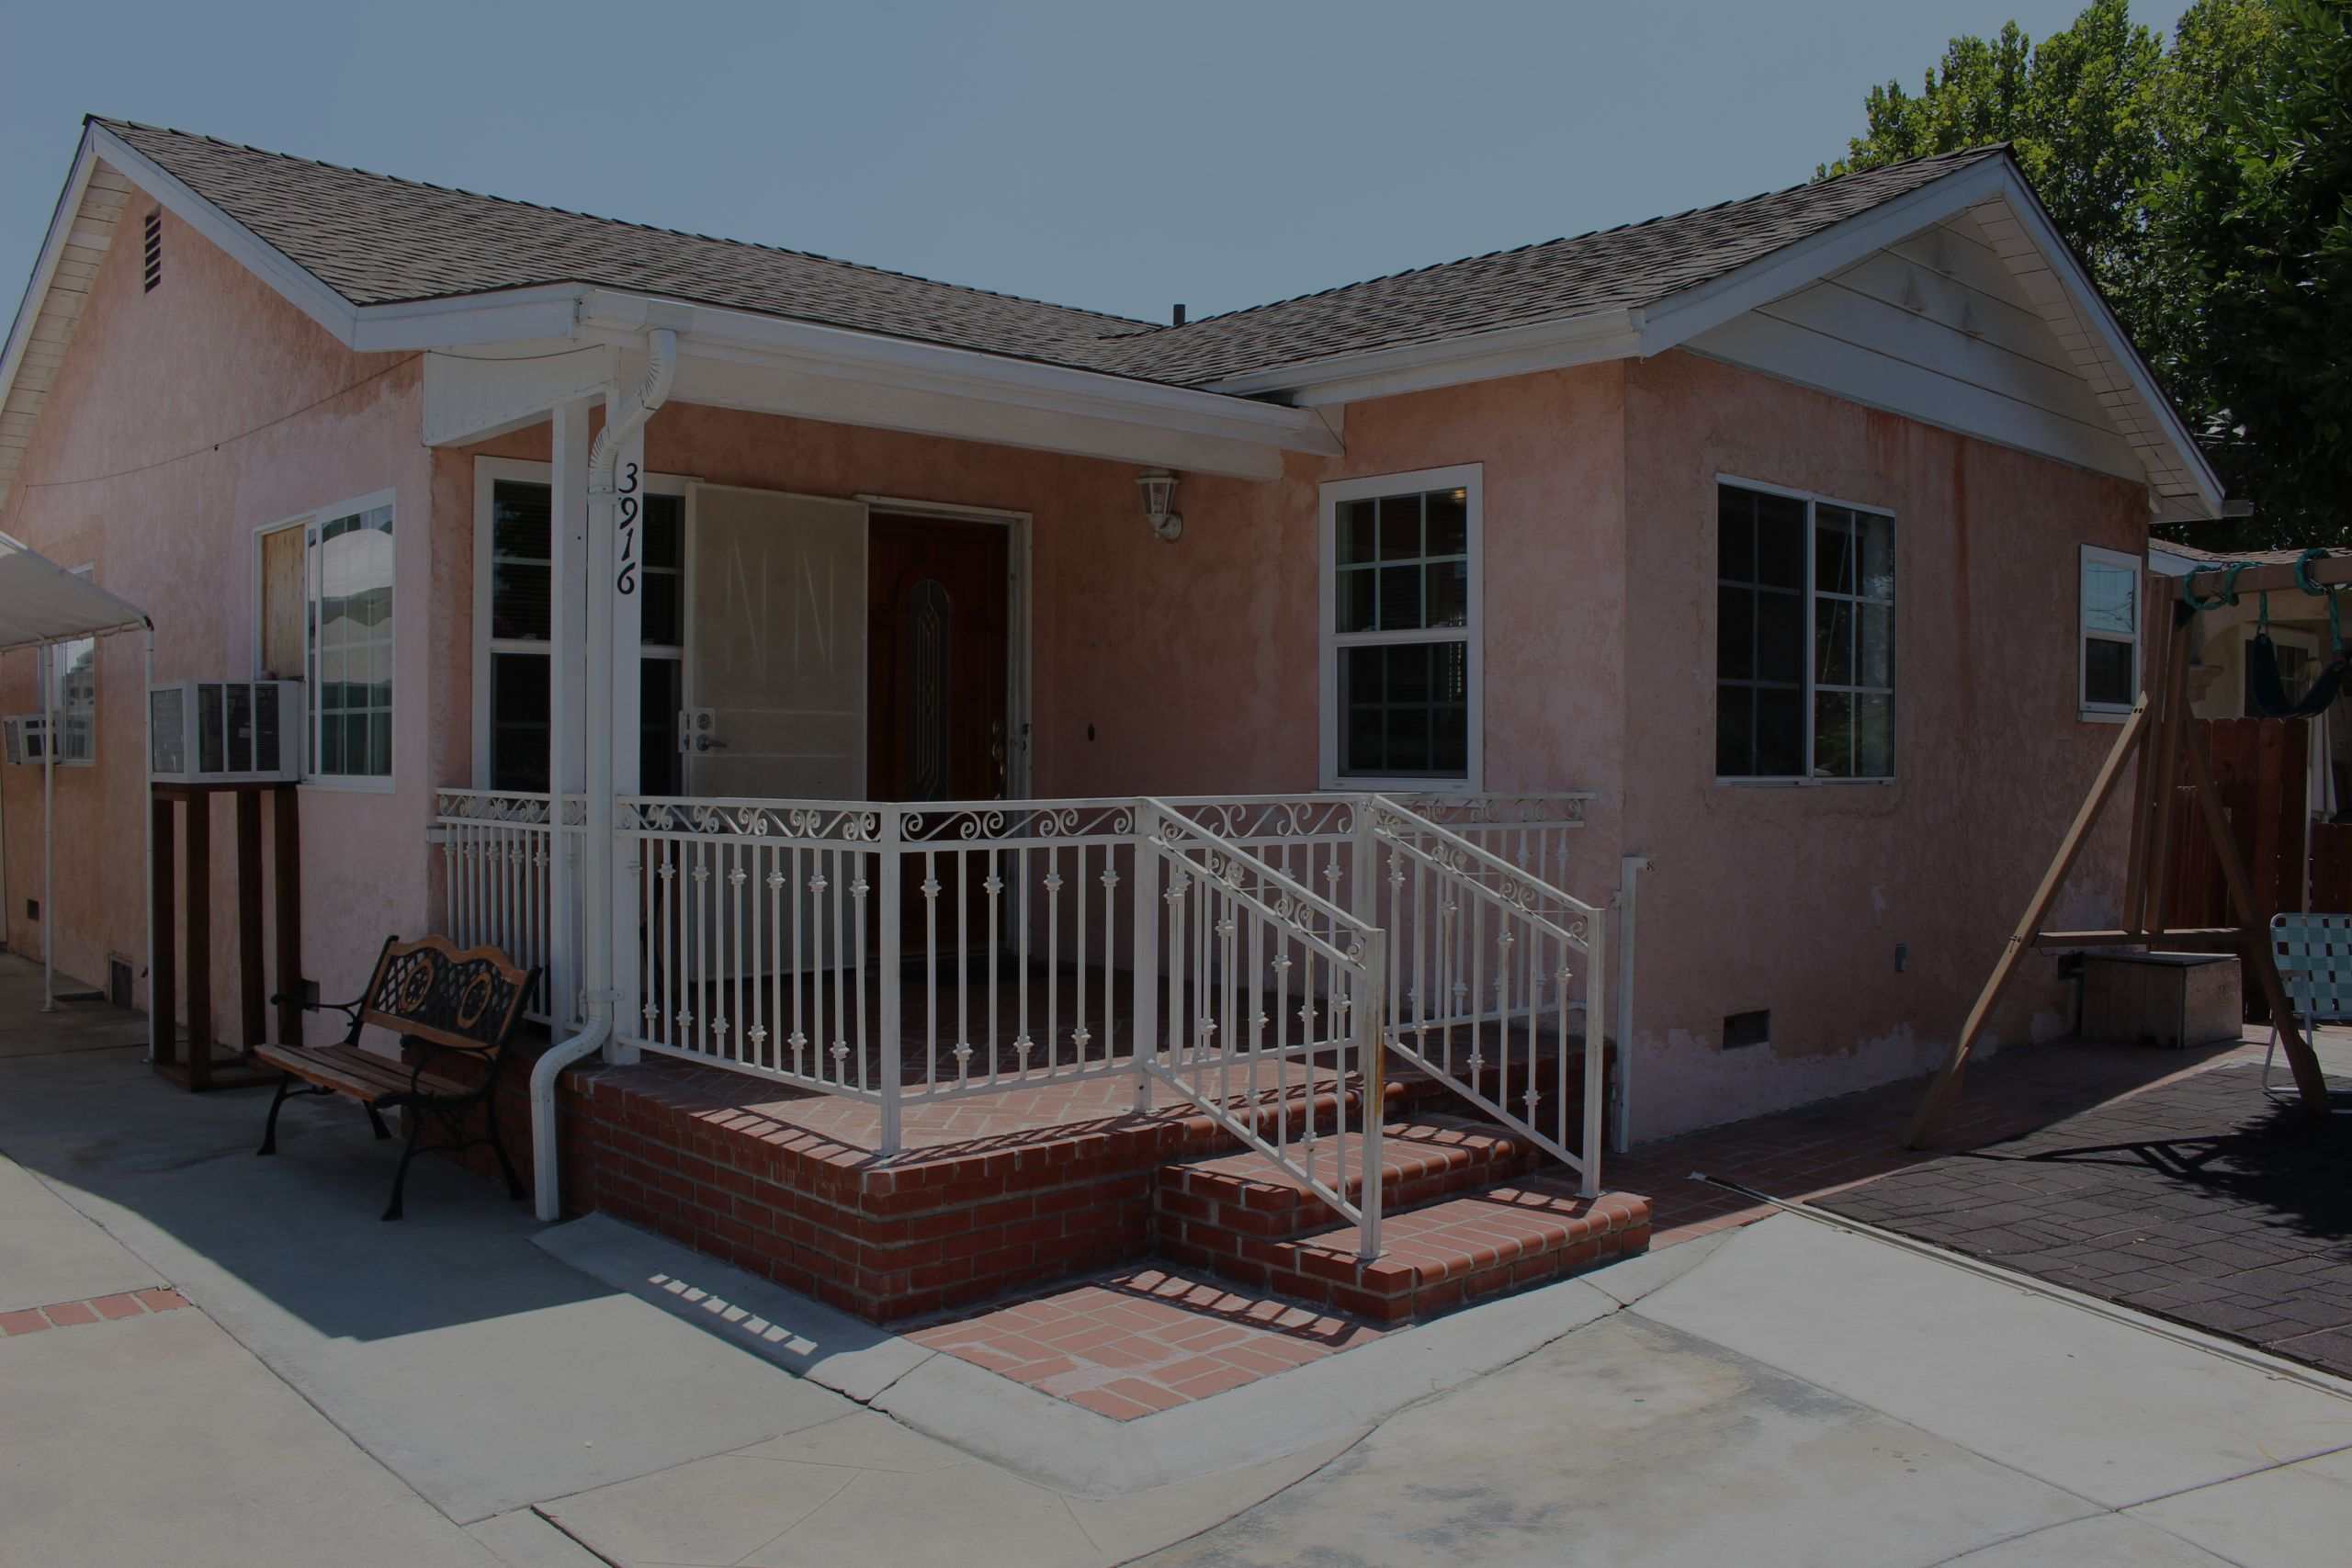 Listing of The Week: 3916 Lincoln Ave, El Monte